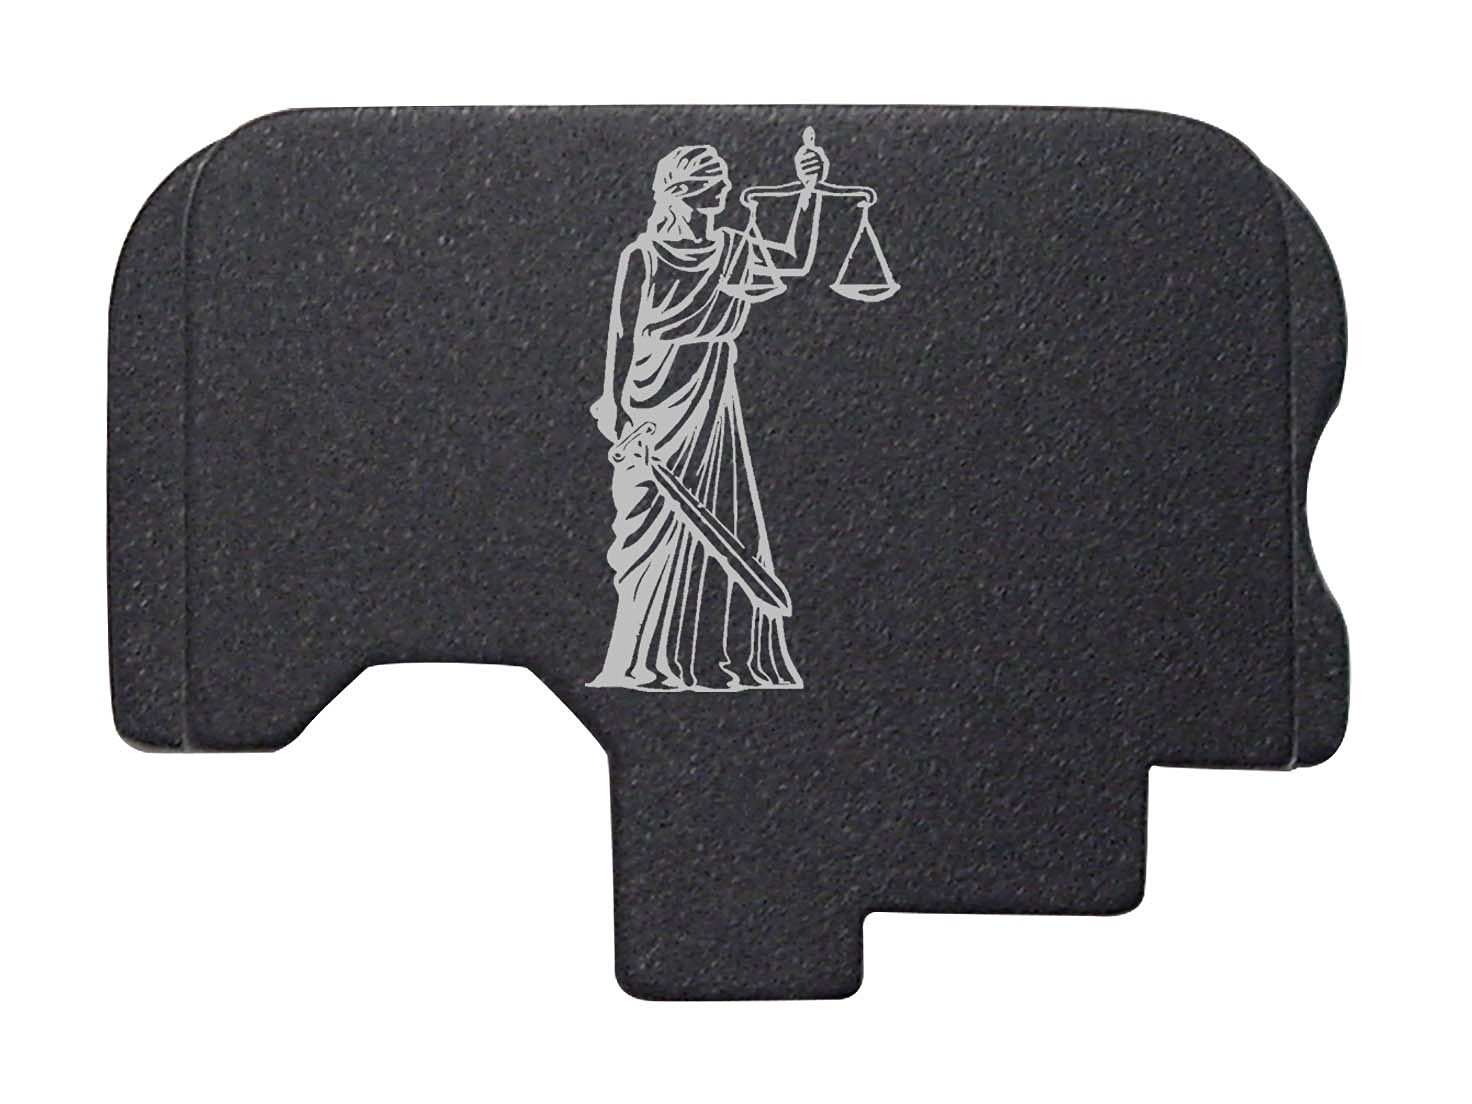 Truth Justice Scales Engraved Black Rear Slide Cover Plate For Kahr Arms 9MM Models: CT9 CW9 CM9 TP9 T9 P9 K9 PM9 MK9